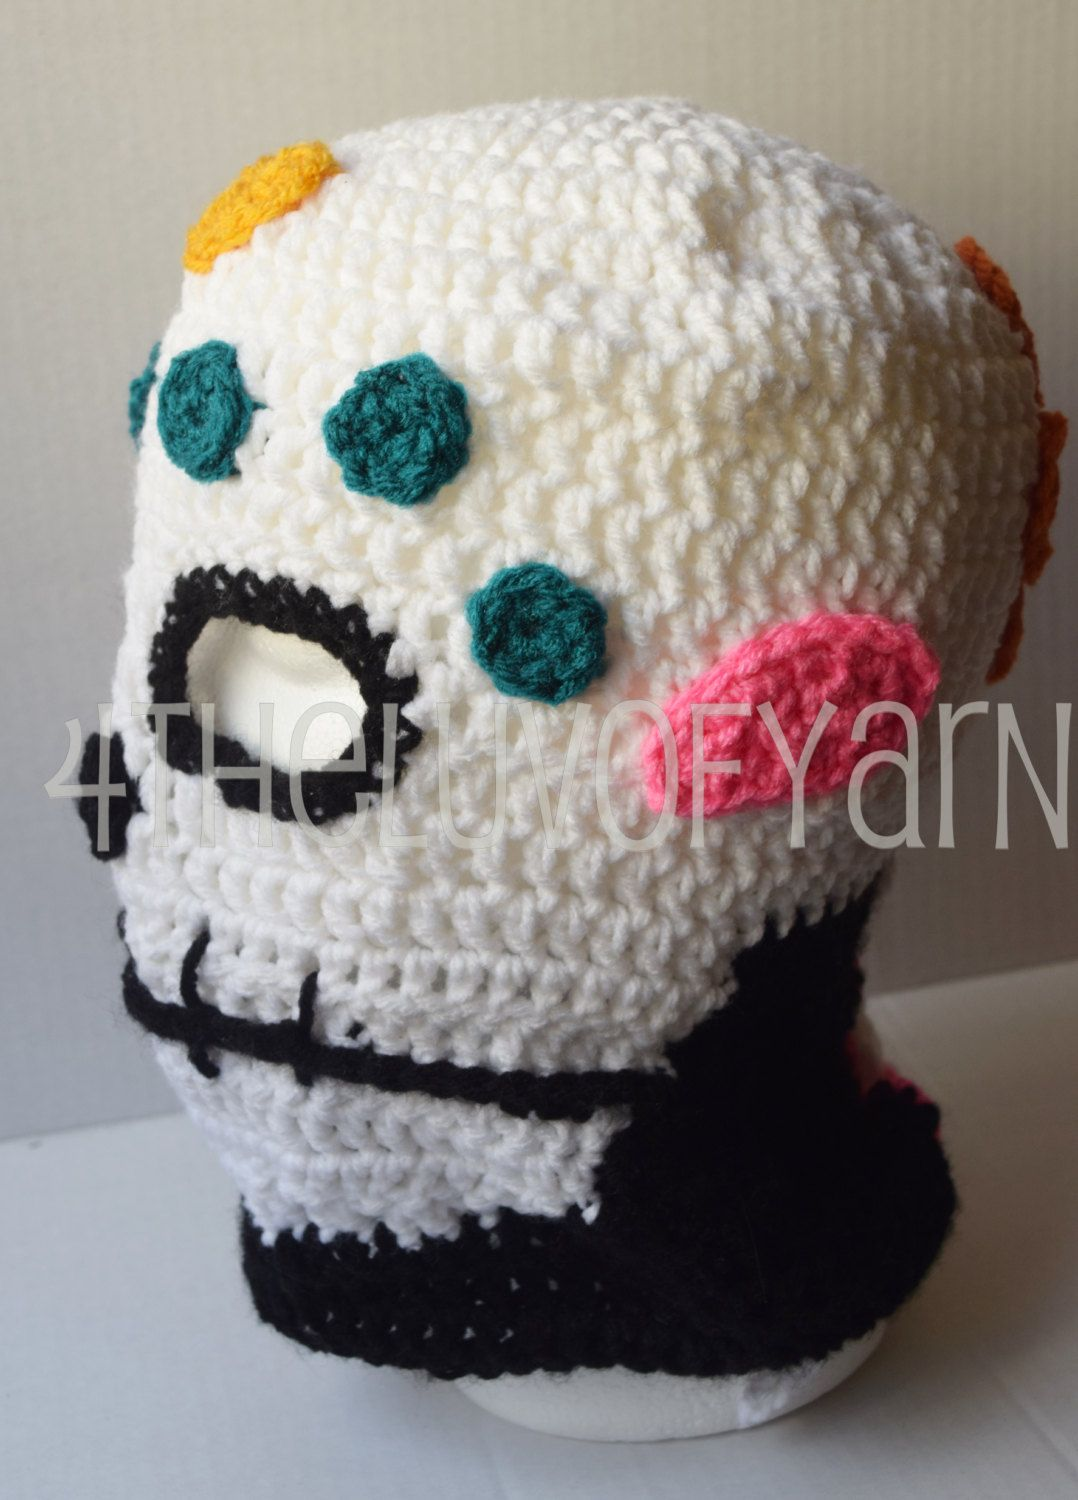 A personal favorite from my Etsy shop Halloween face